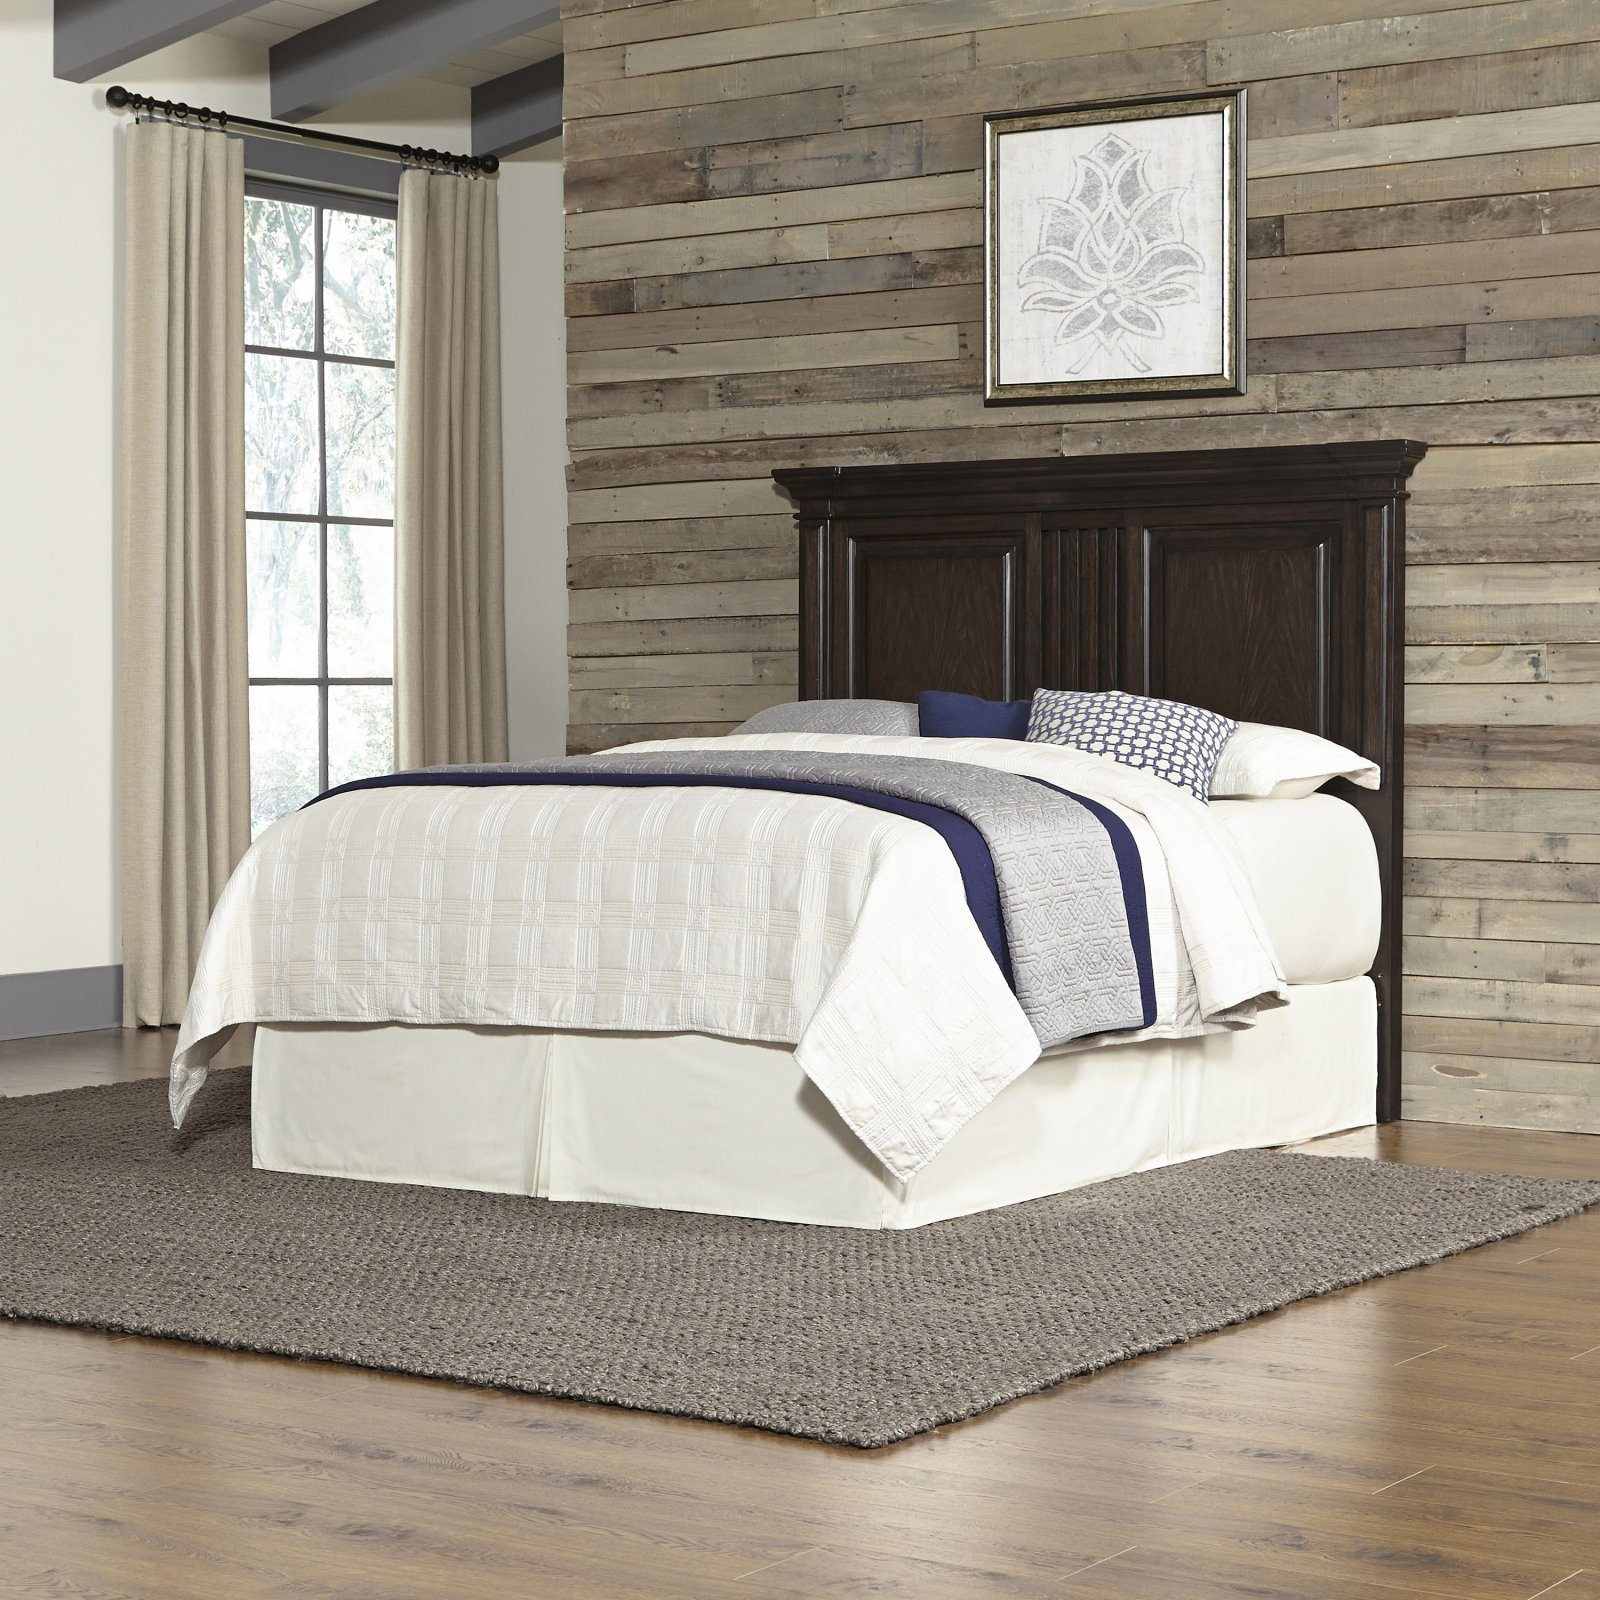 Prairie Home Queen/Full Headboard